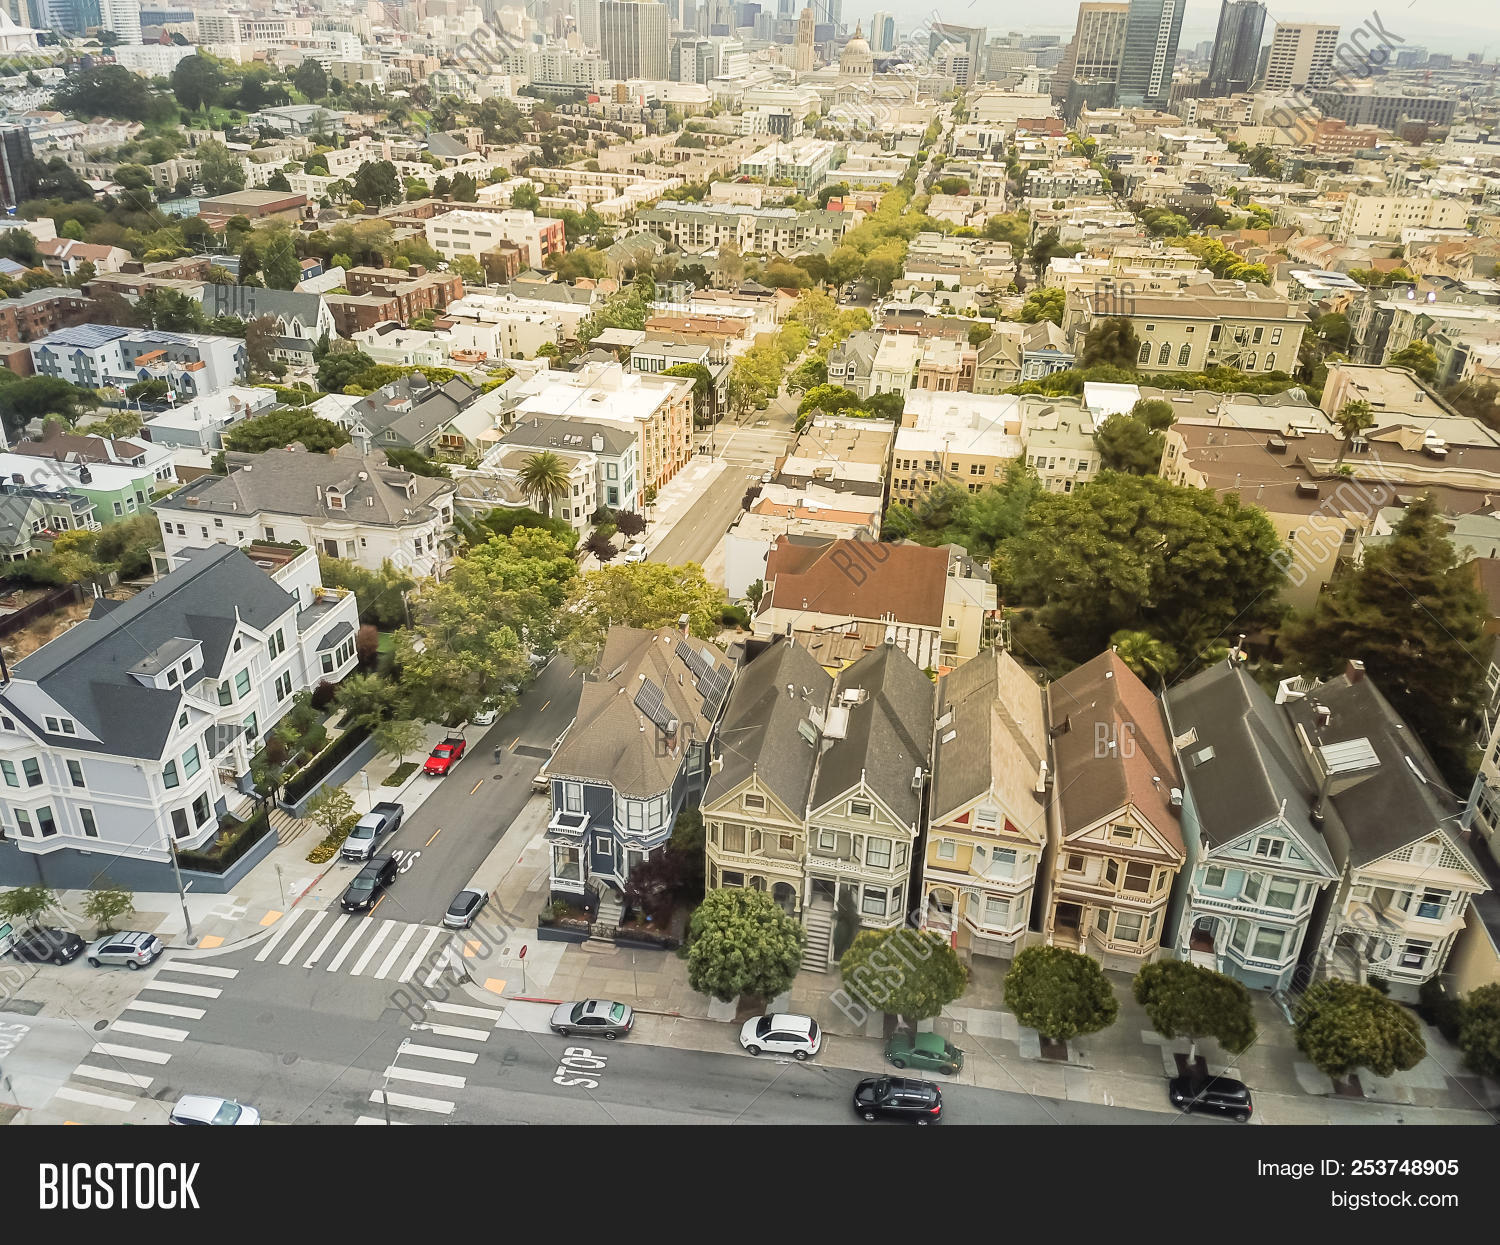 addition,aerial,alamo,america,architecture,attraction,beautiful,building,california,cityscape,colorful,destination,exterior,famous,francisco,high,hill,historic,home,house,ladies,landmark,neighborhood,outdoor,painted,park,popular,residence,residential,road,romantic,row,san,scenic,skyline,skyscraper,square,street,top,tourism,tourist,tower,tree,urban,usa,victorian,view,vintage,vista,western